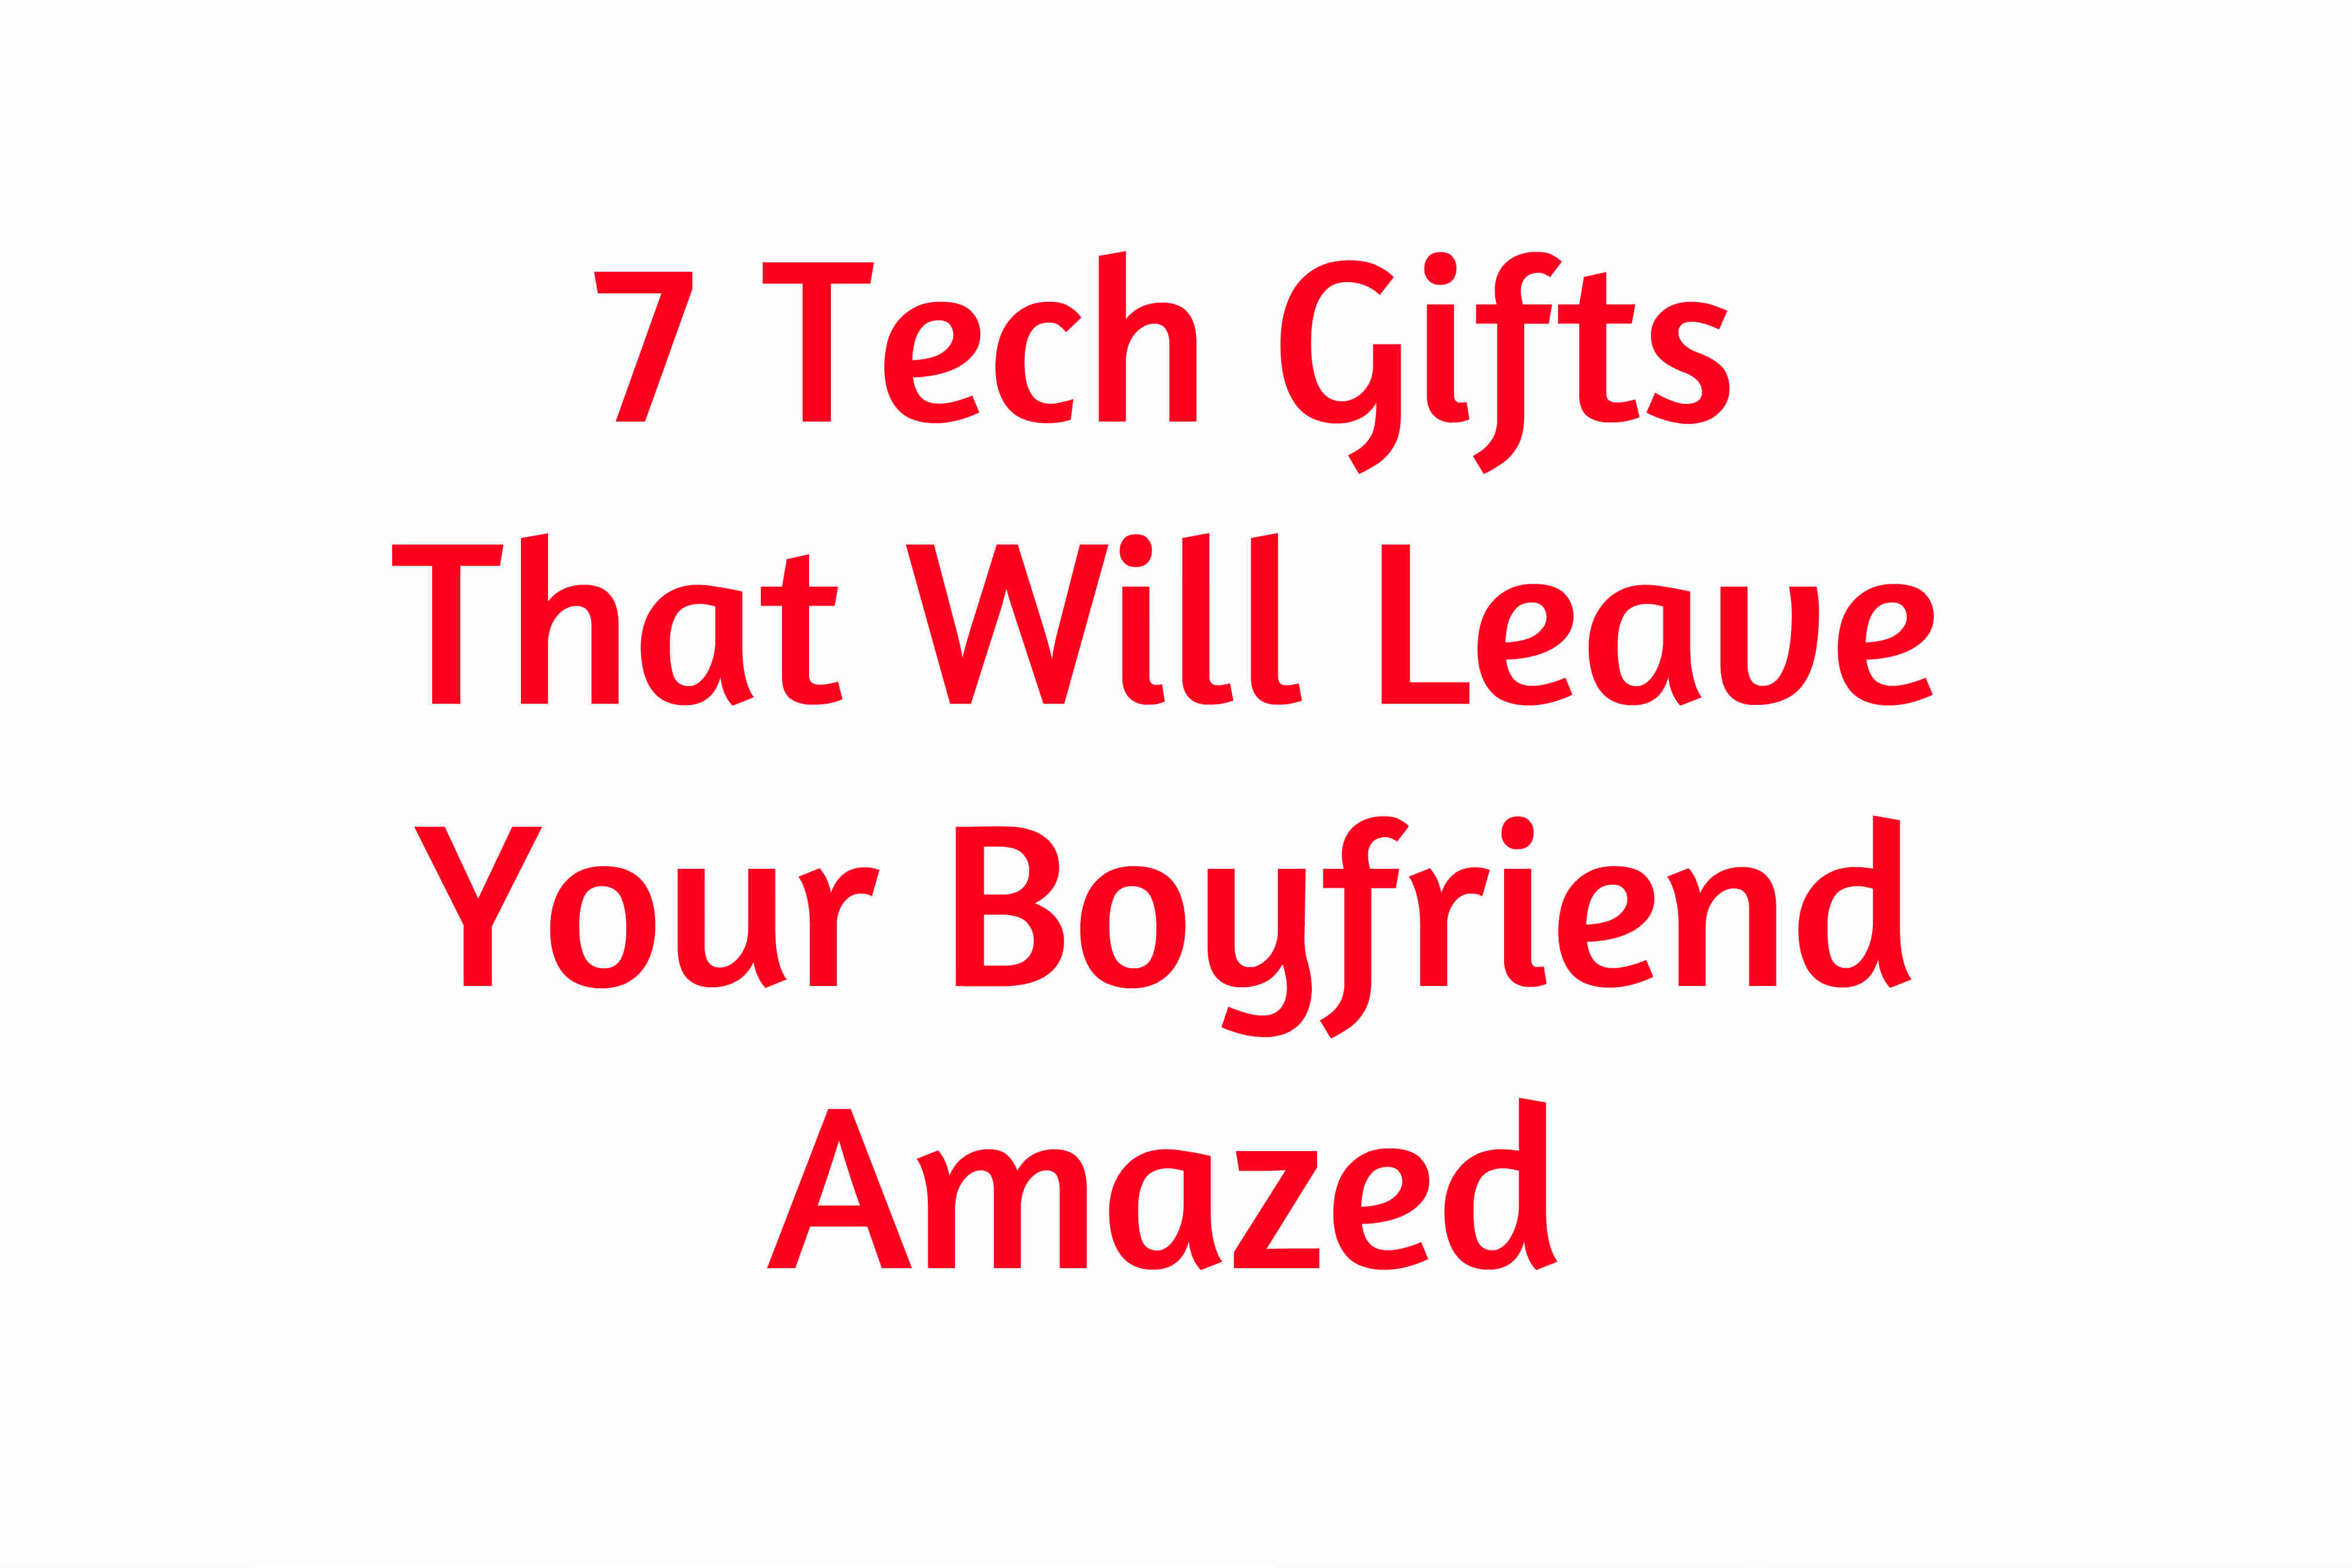 7 Tech Gifts That Will Leave Your Boyfriend Amazed